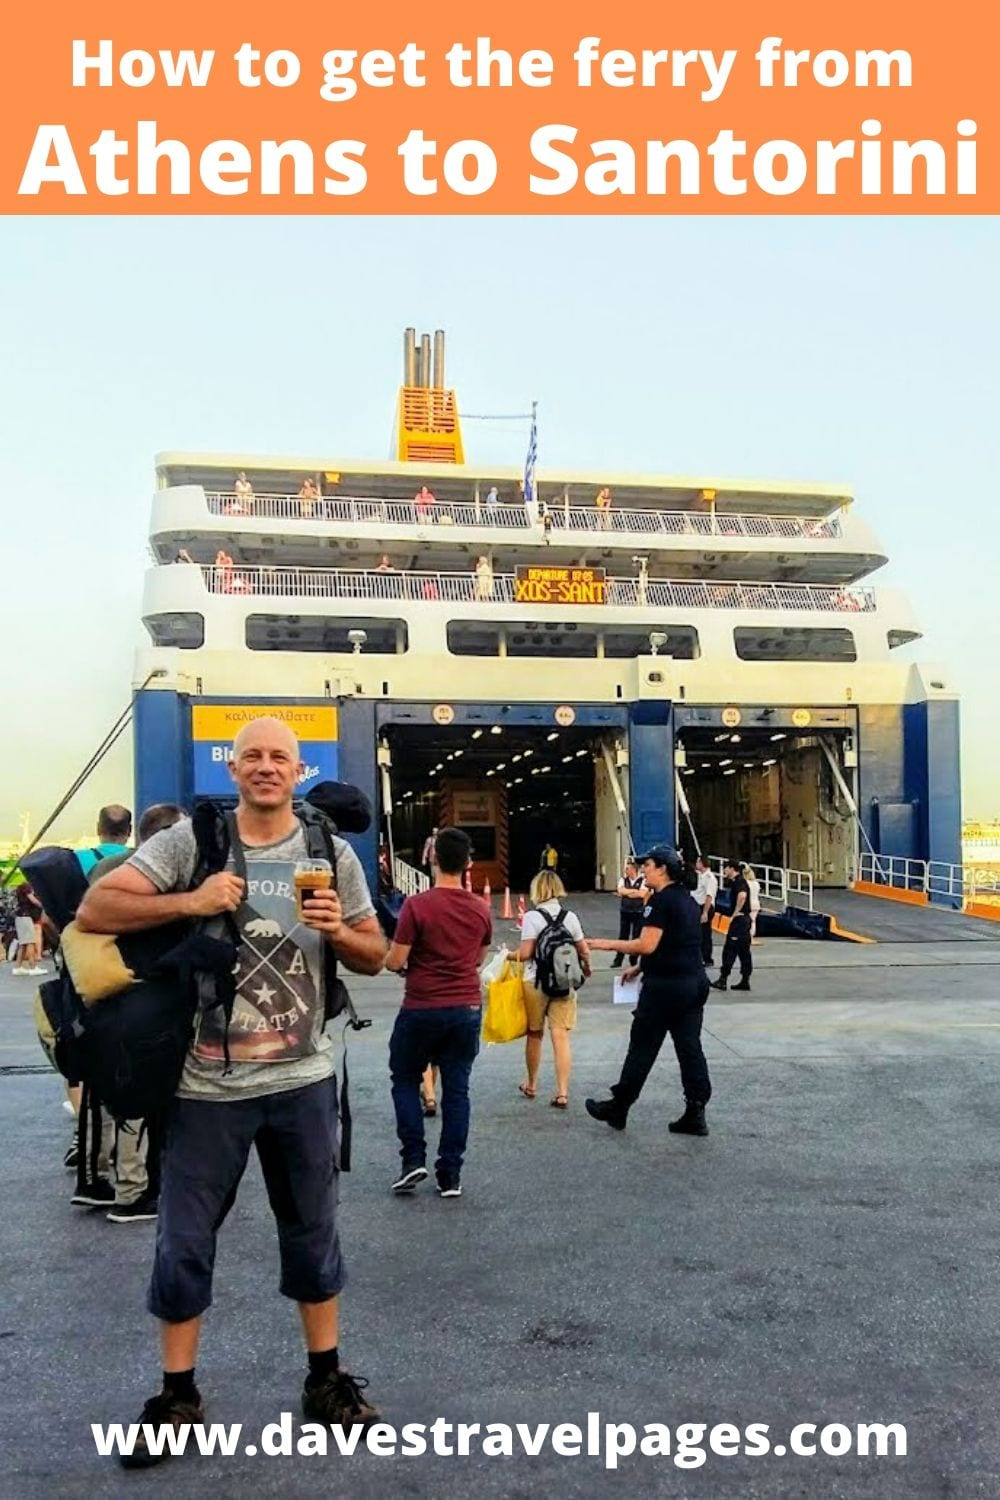 How to get the ferry from Athens to Santorini in Greece